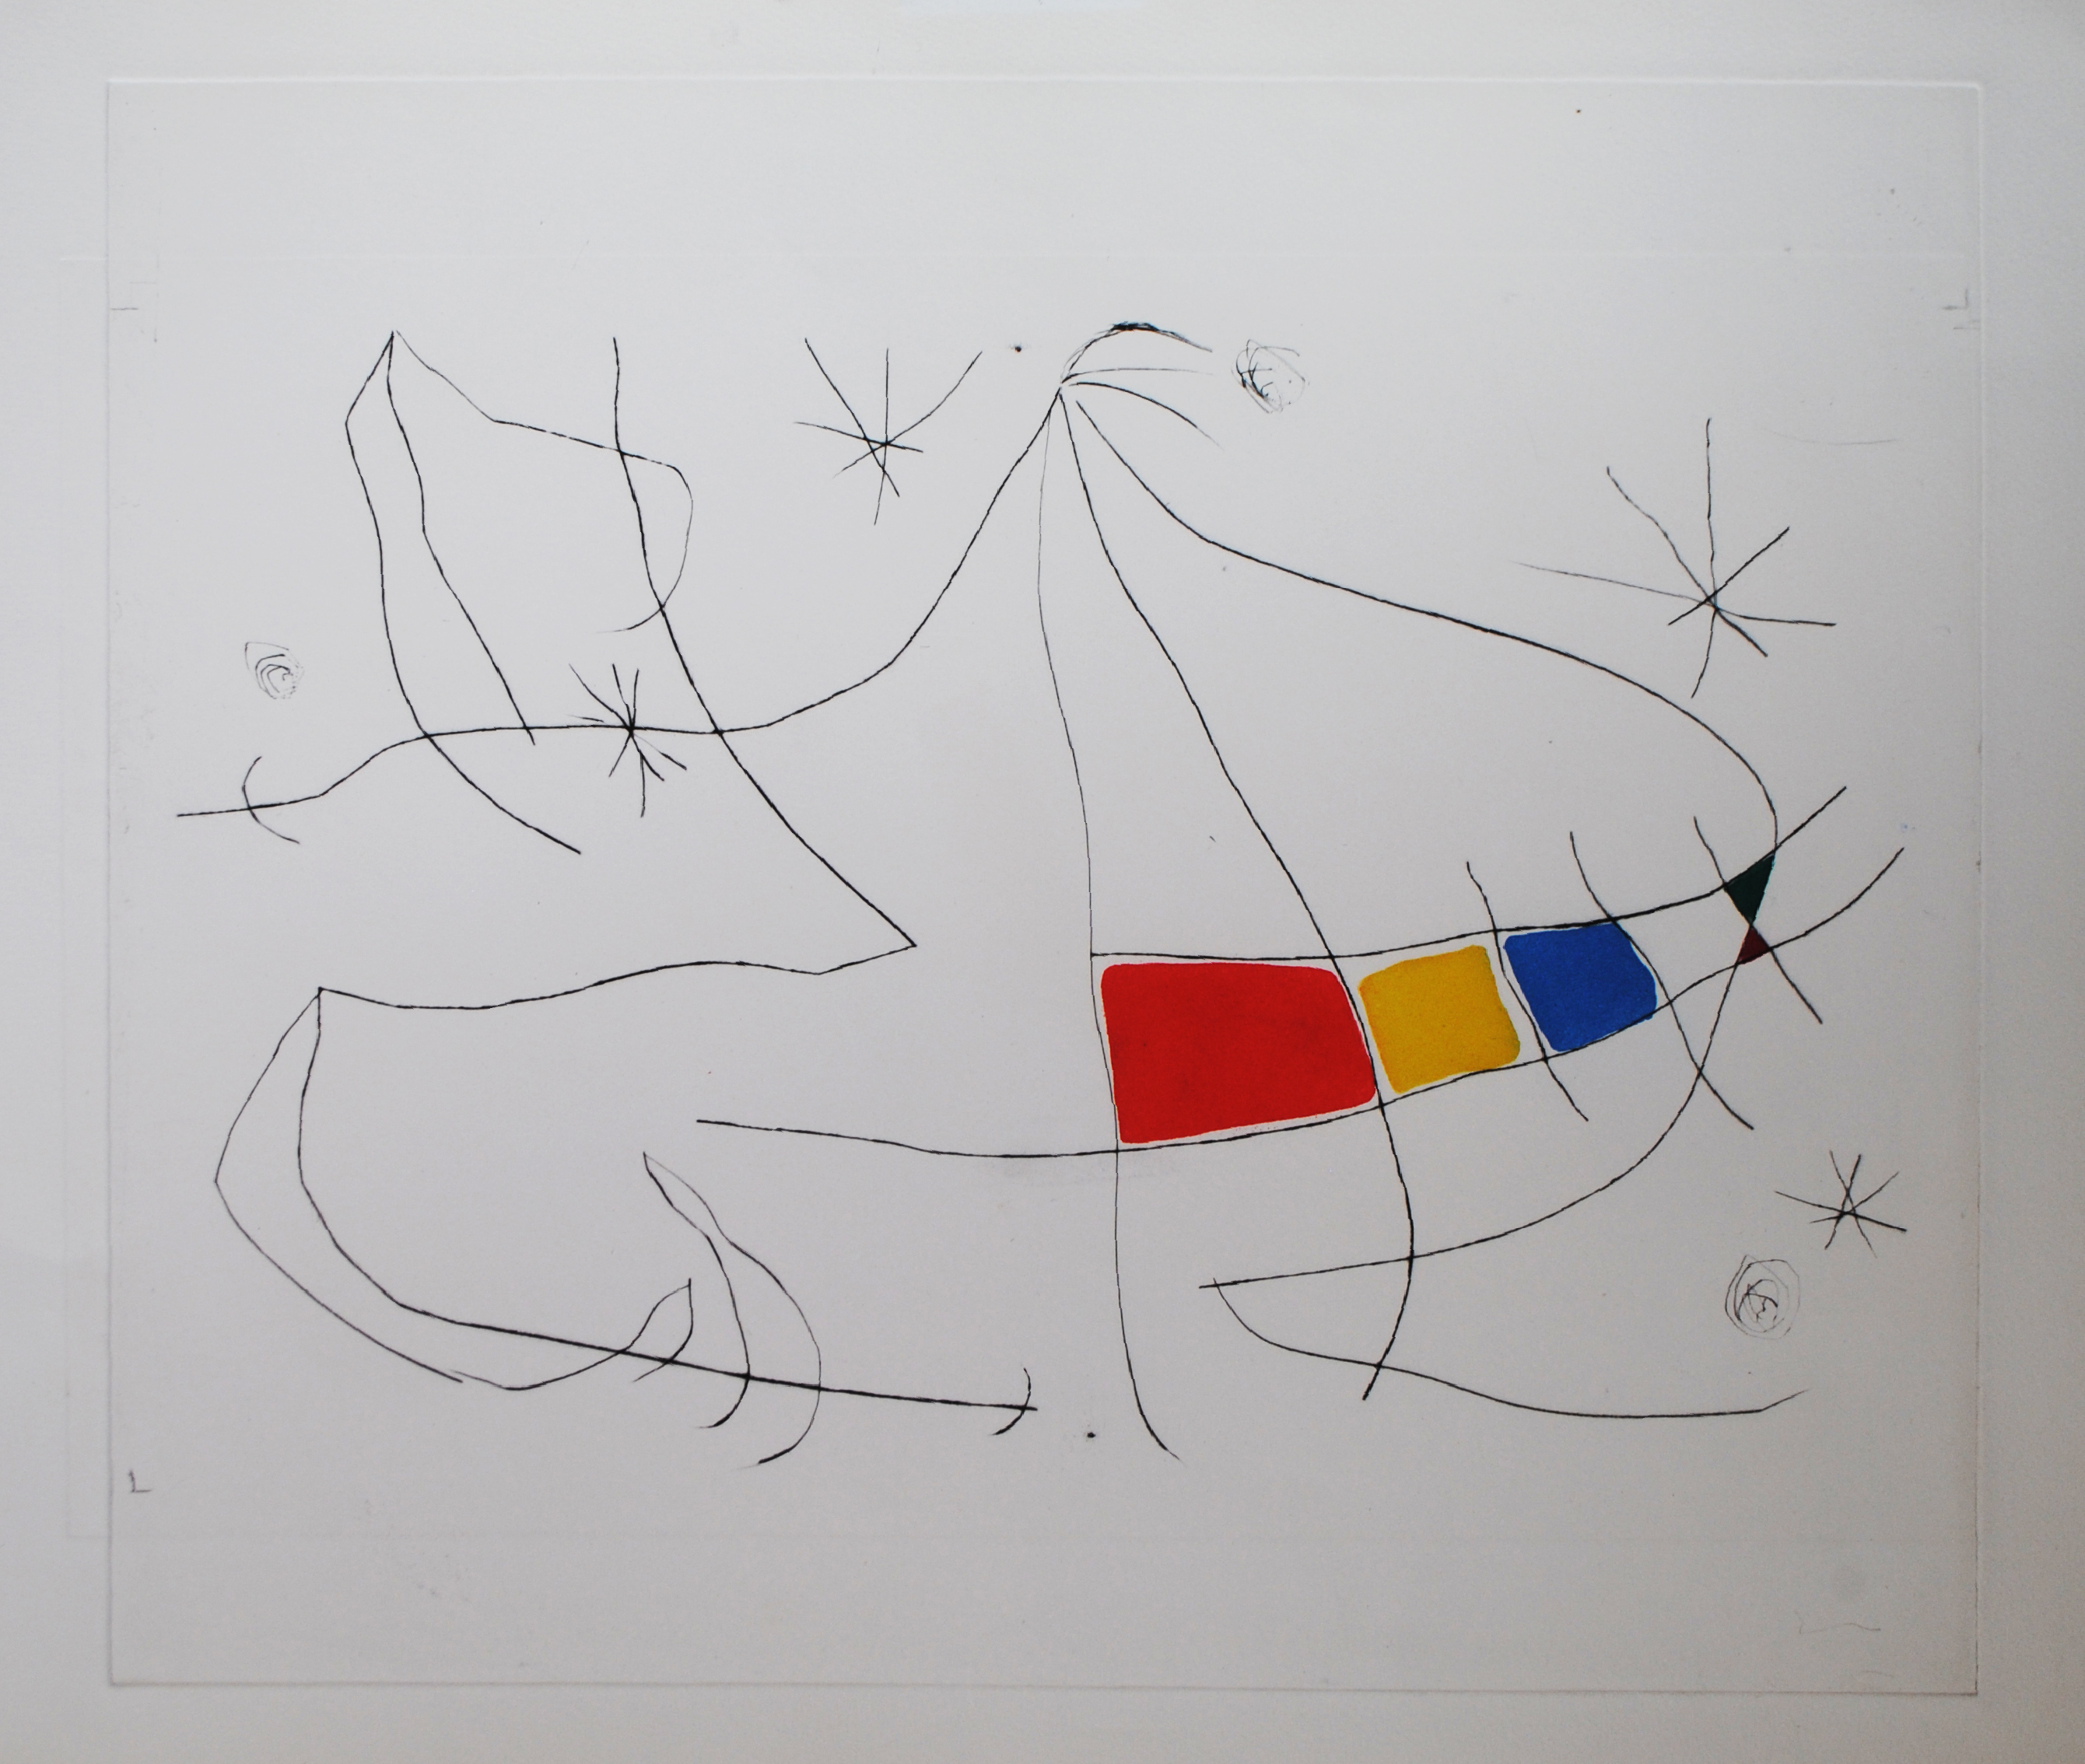 Miro, L'Issue Derobée, drypoint with aquatint, D691